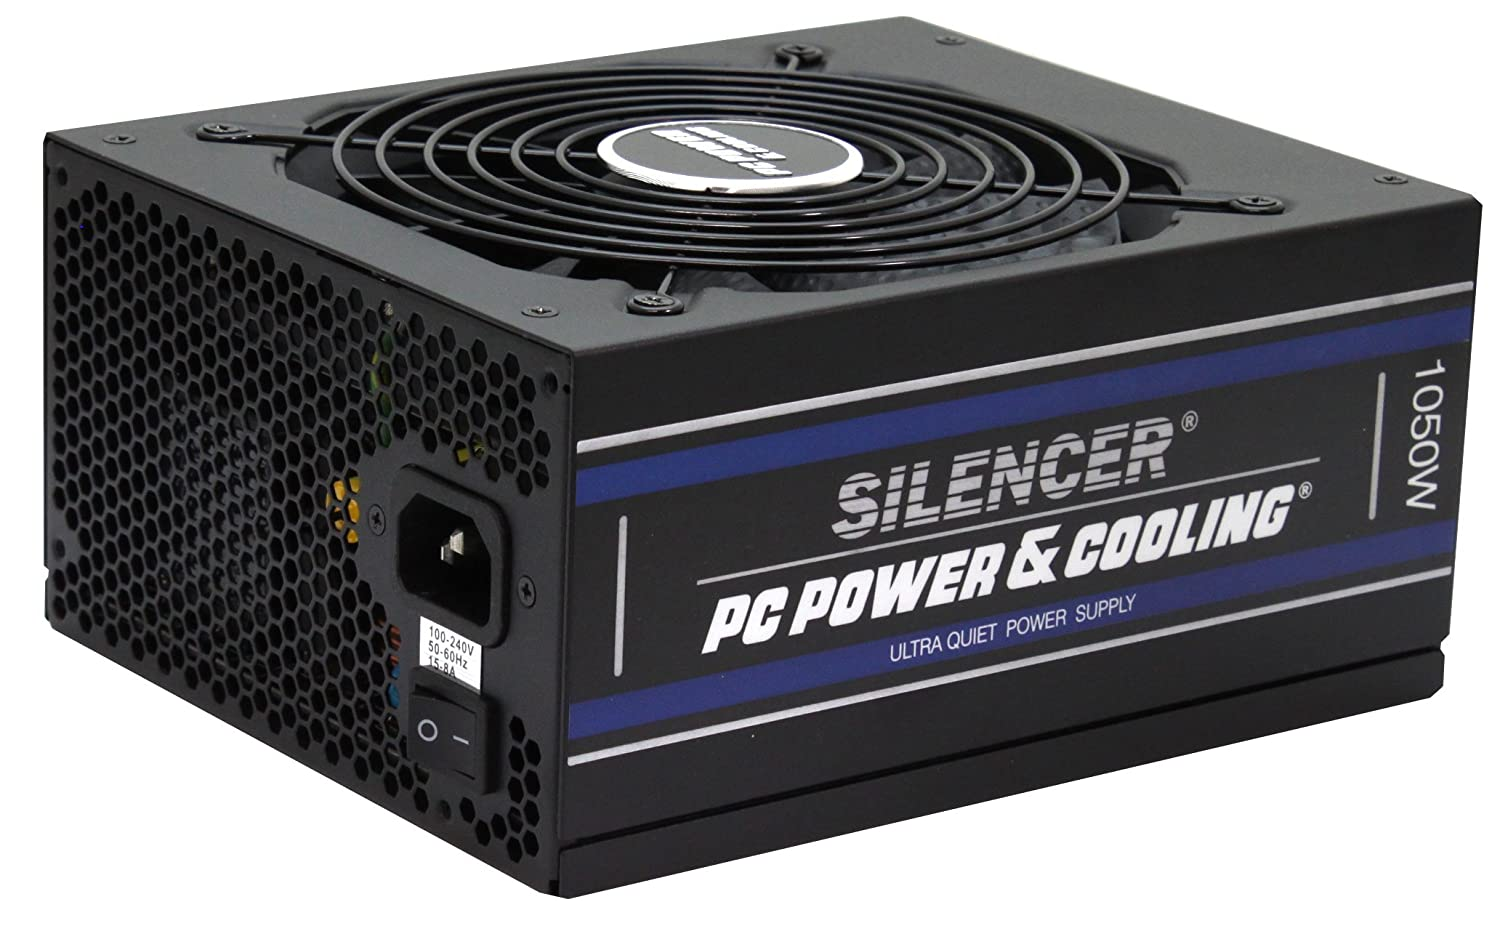 PC Power & Cooling Silencer Series 1050 Watt 80Plus Platinum Fully-Modular Ultra Quiet ATX PC Power Supply FPS1050-A5M00